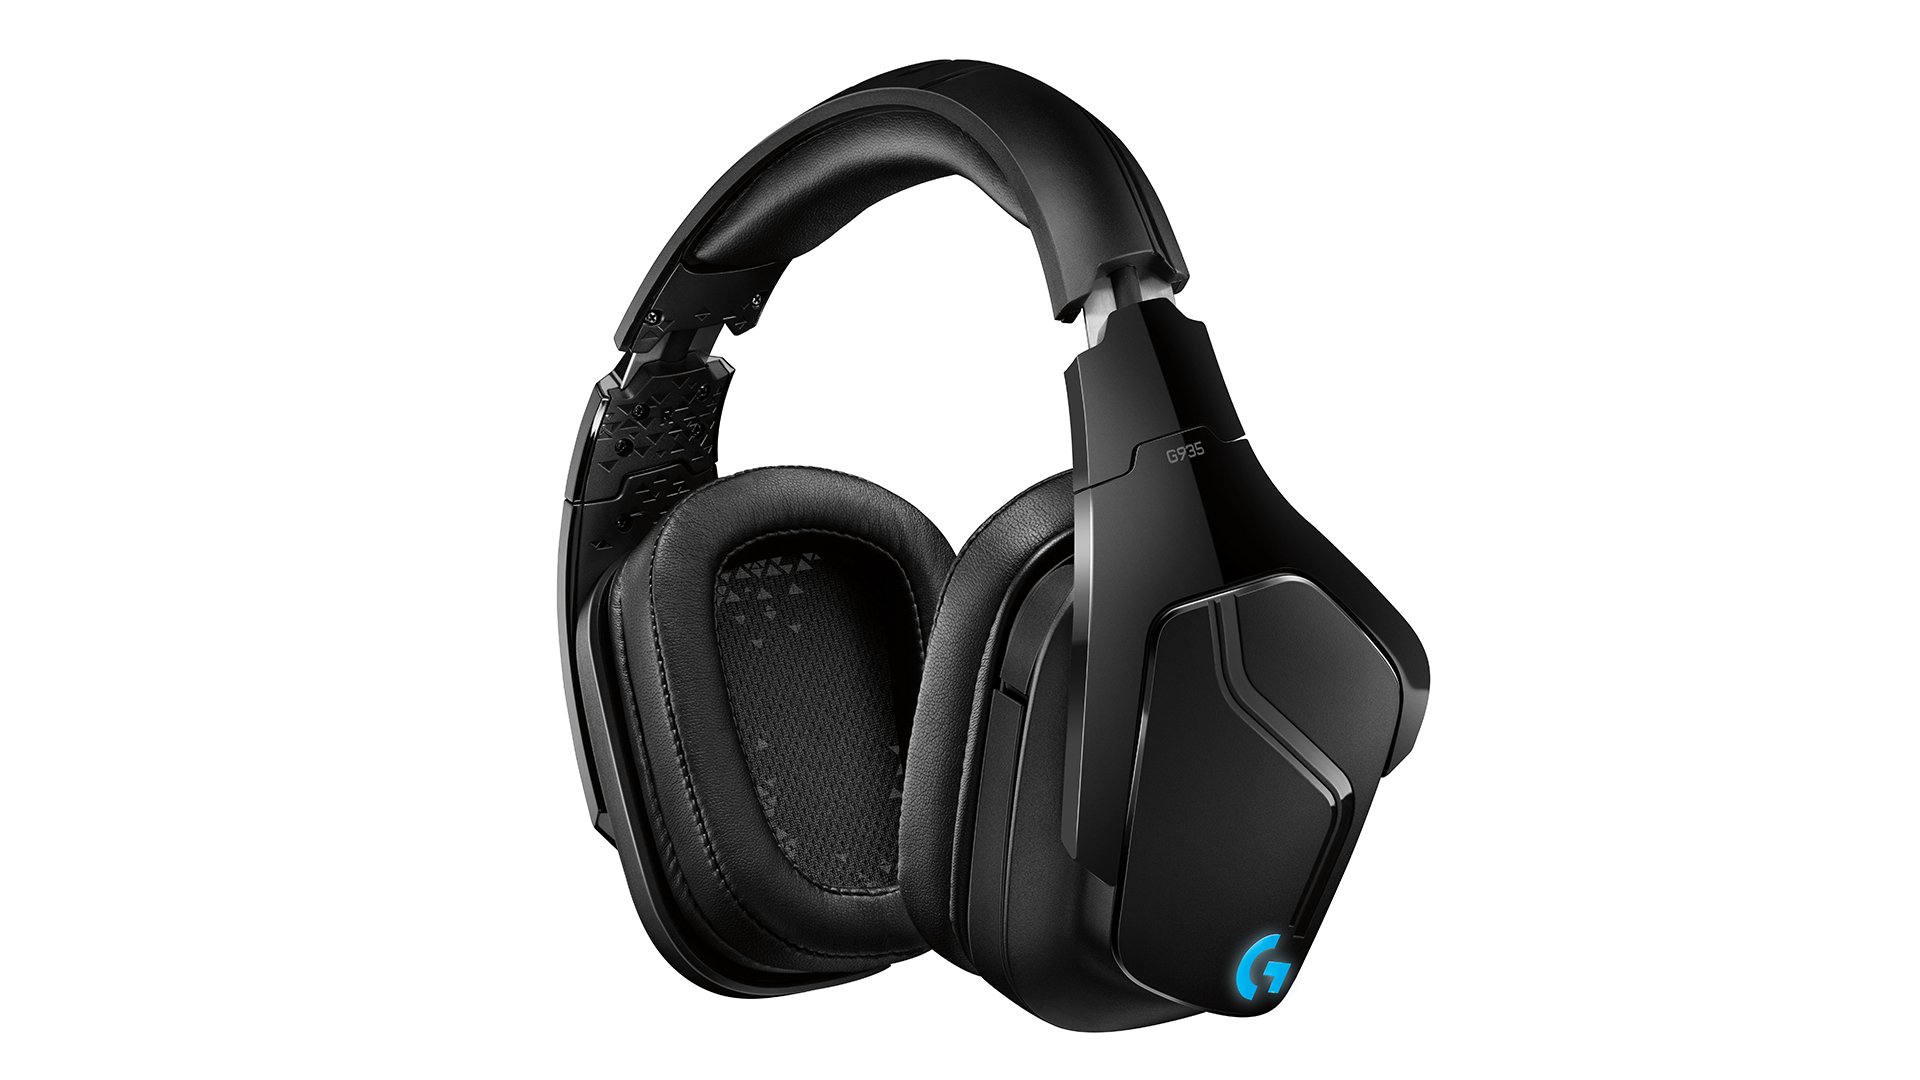 Logitech G935 7.1 Lightsync Wireless Gaming Headset